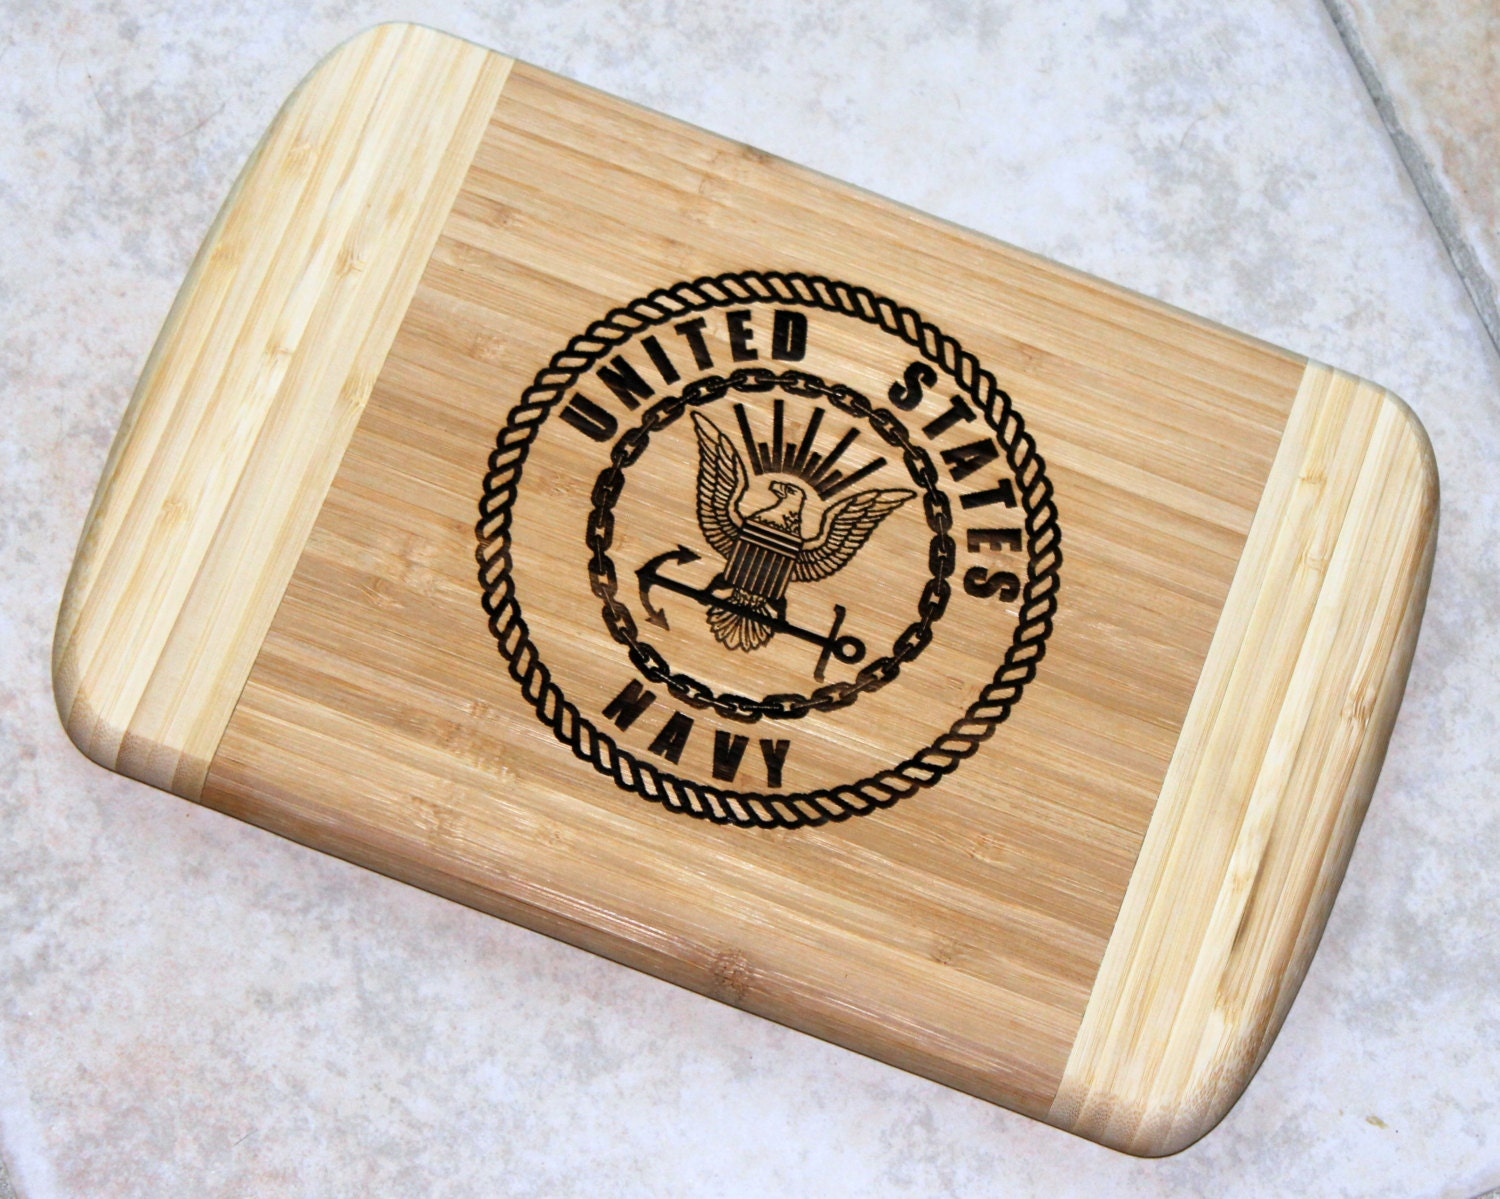 Bamboo Cutting Board With Laser Engraved Us Navy Military Logo